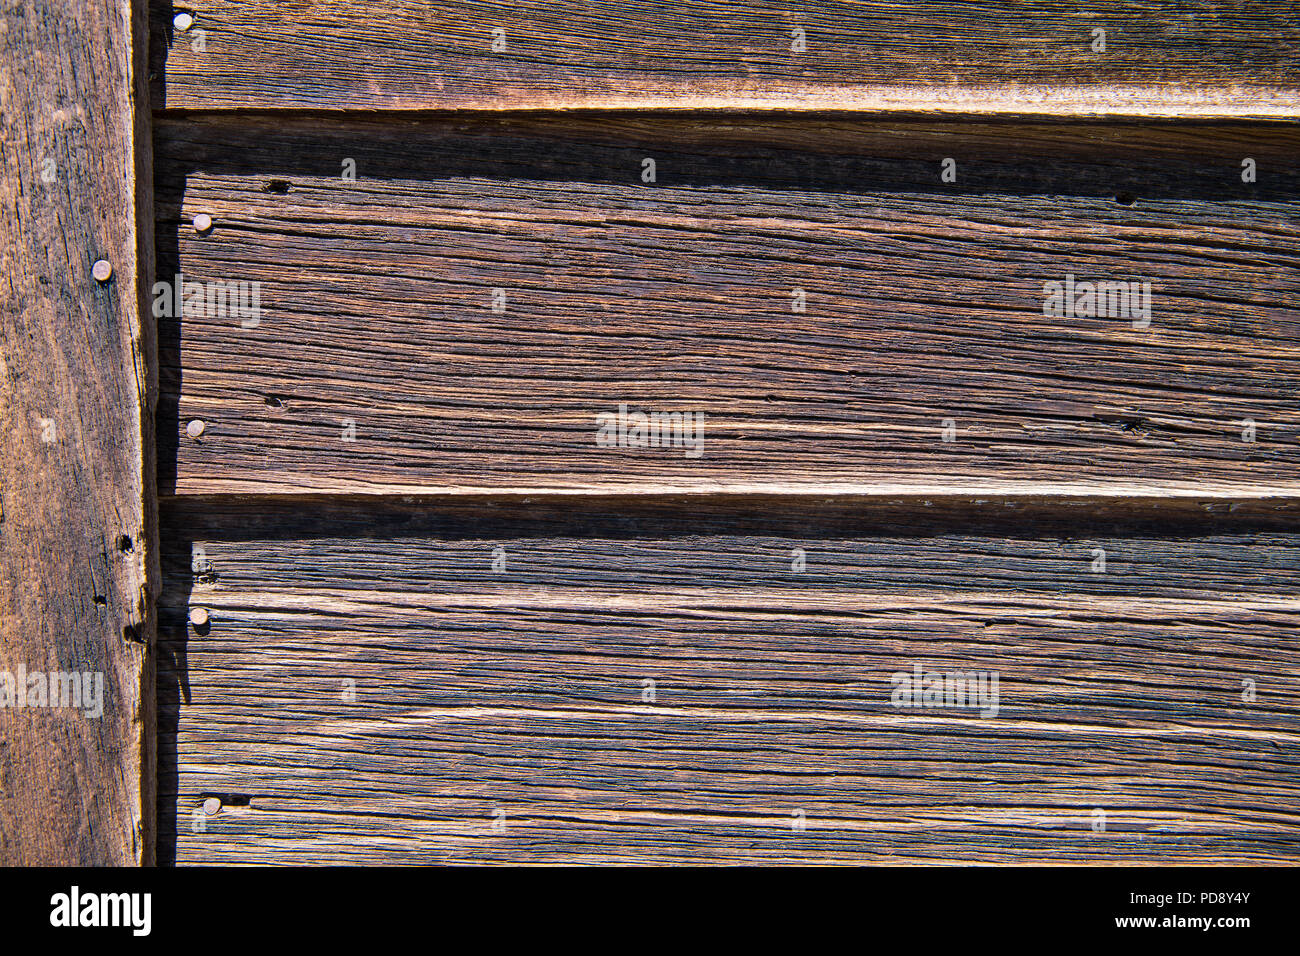 Weathered wood plank siding rustic background texture with natural brown color tones Stock Photo